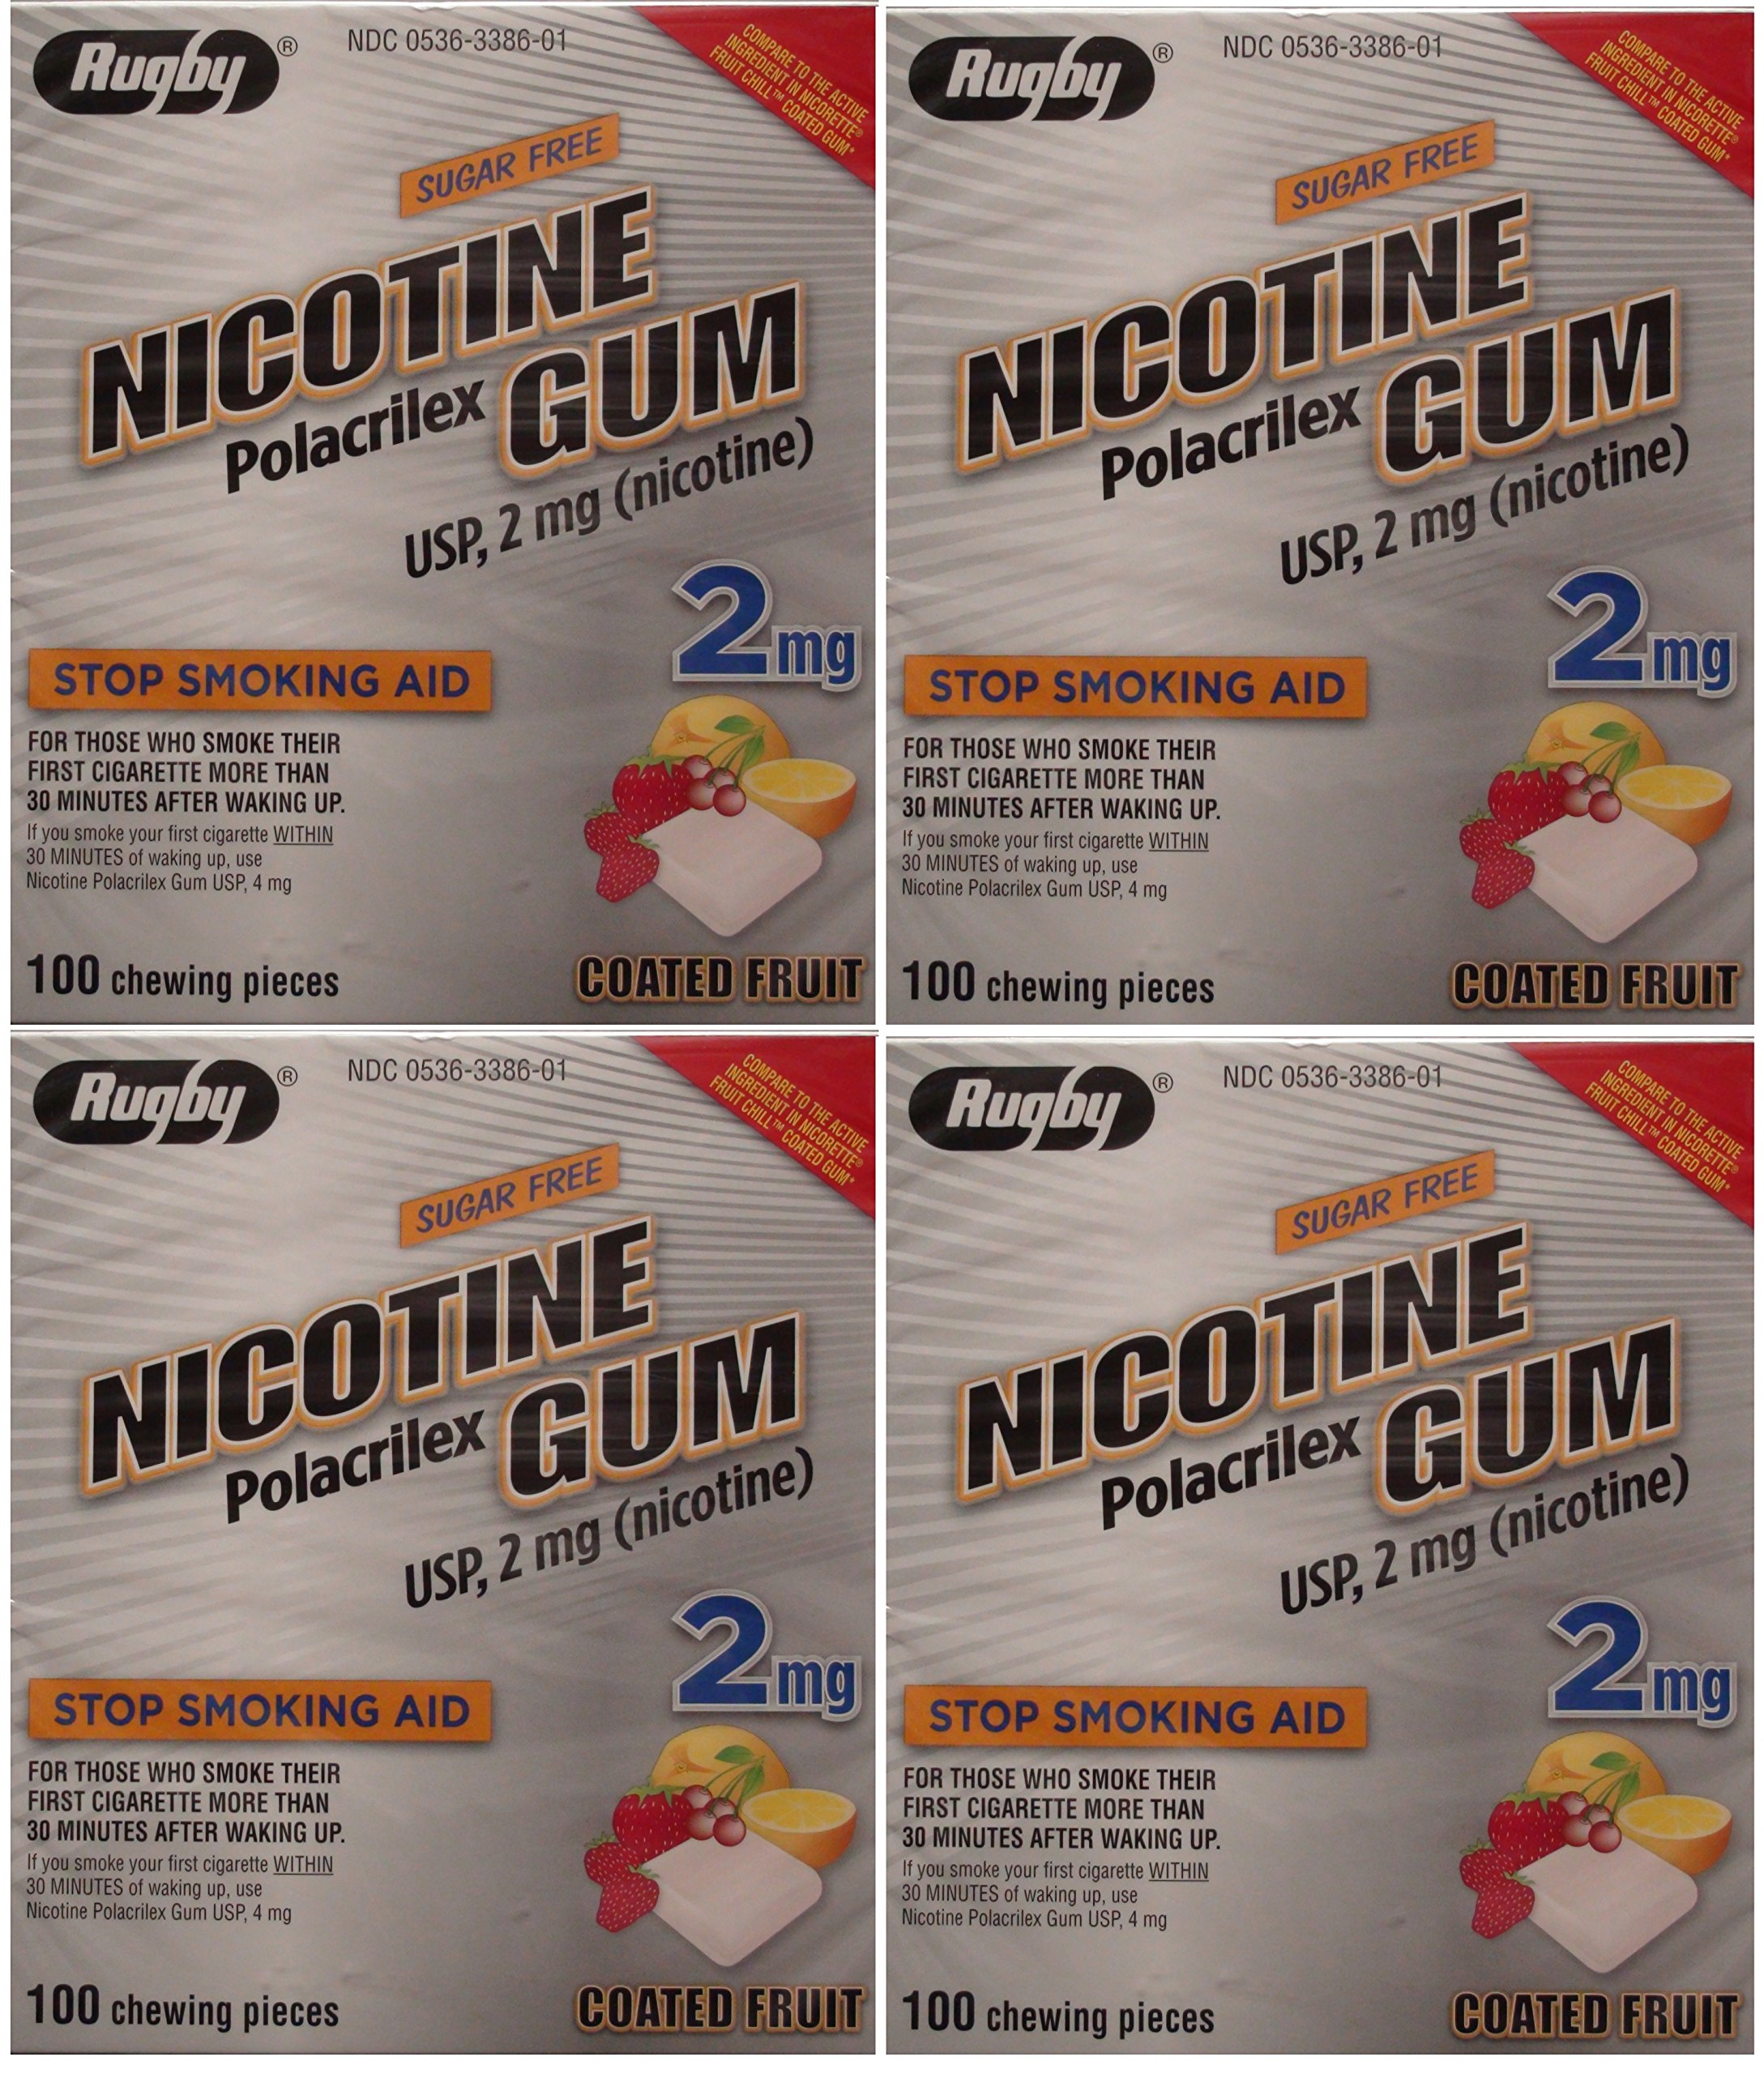 Nicotine Gum 2mg Sugar Free Coated Fruit Generic for Nicorette 100 Pieces per Box Pack of 4 Total 400 Pieces